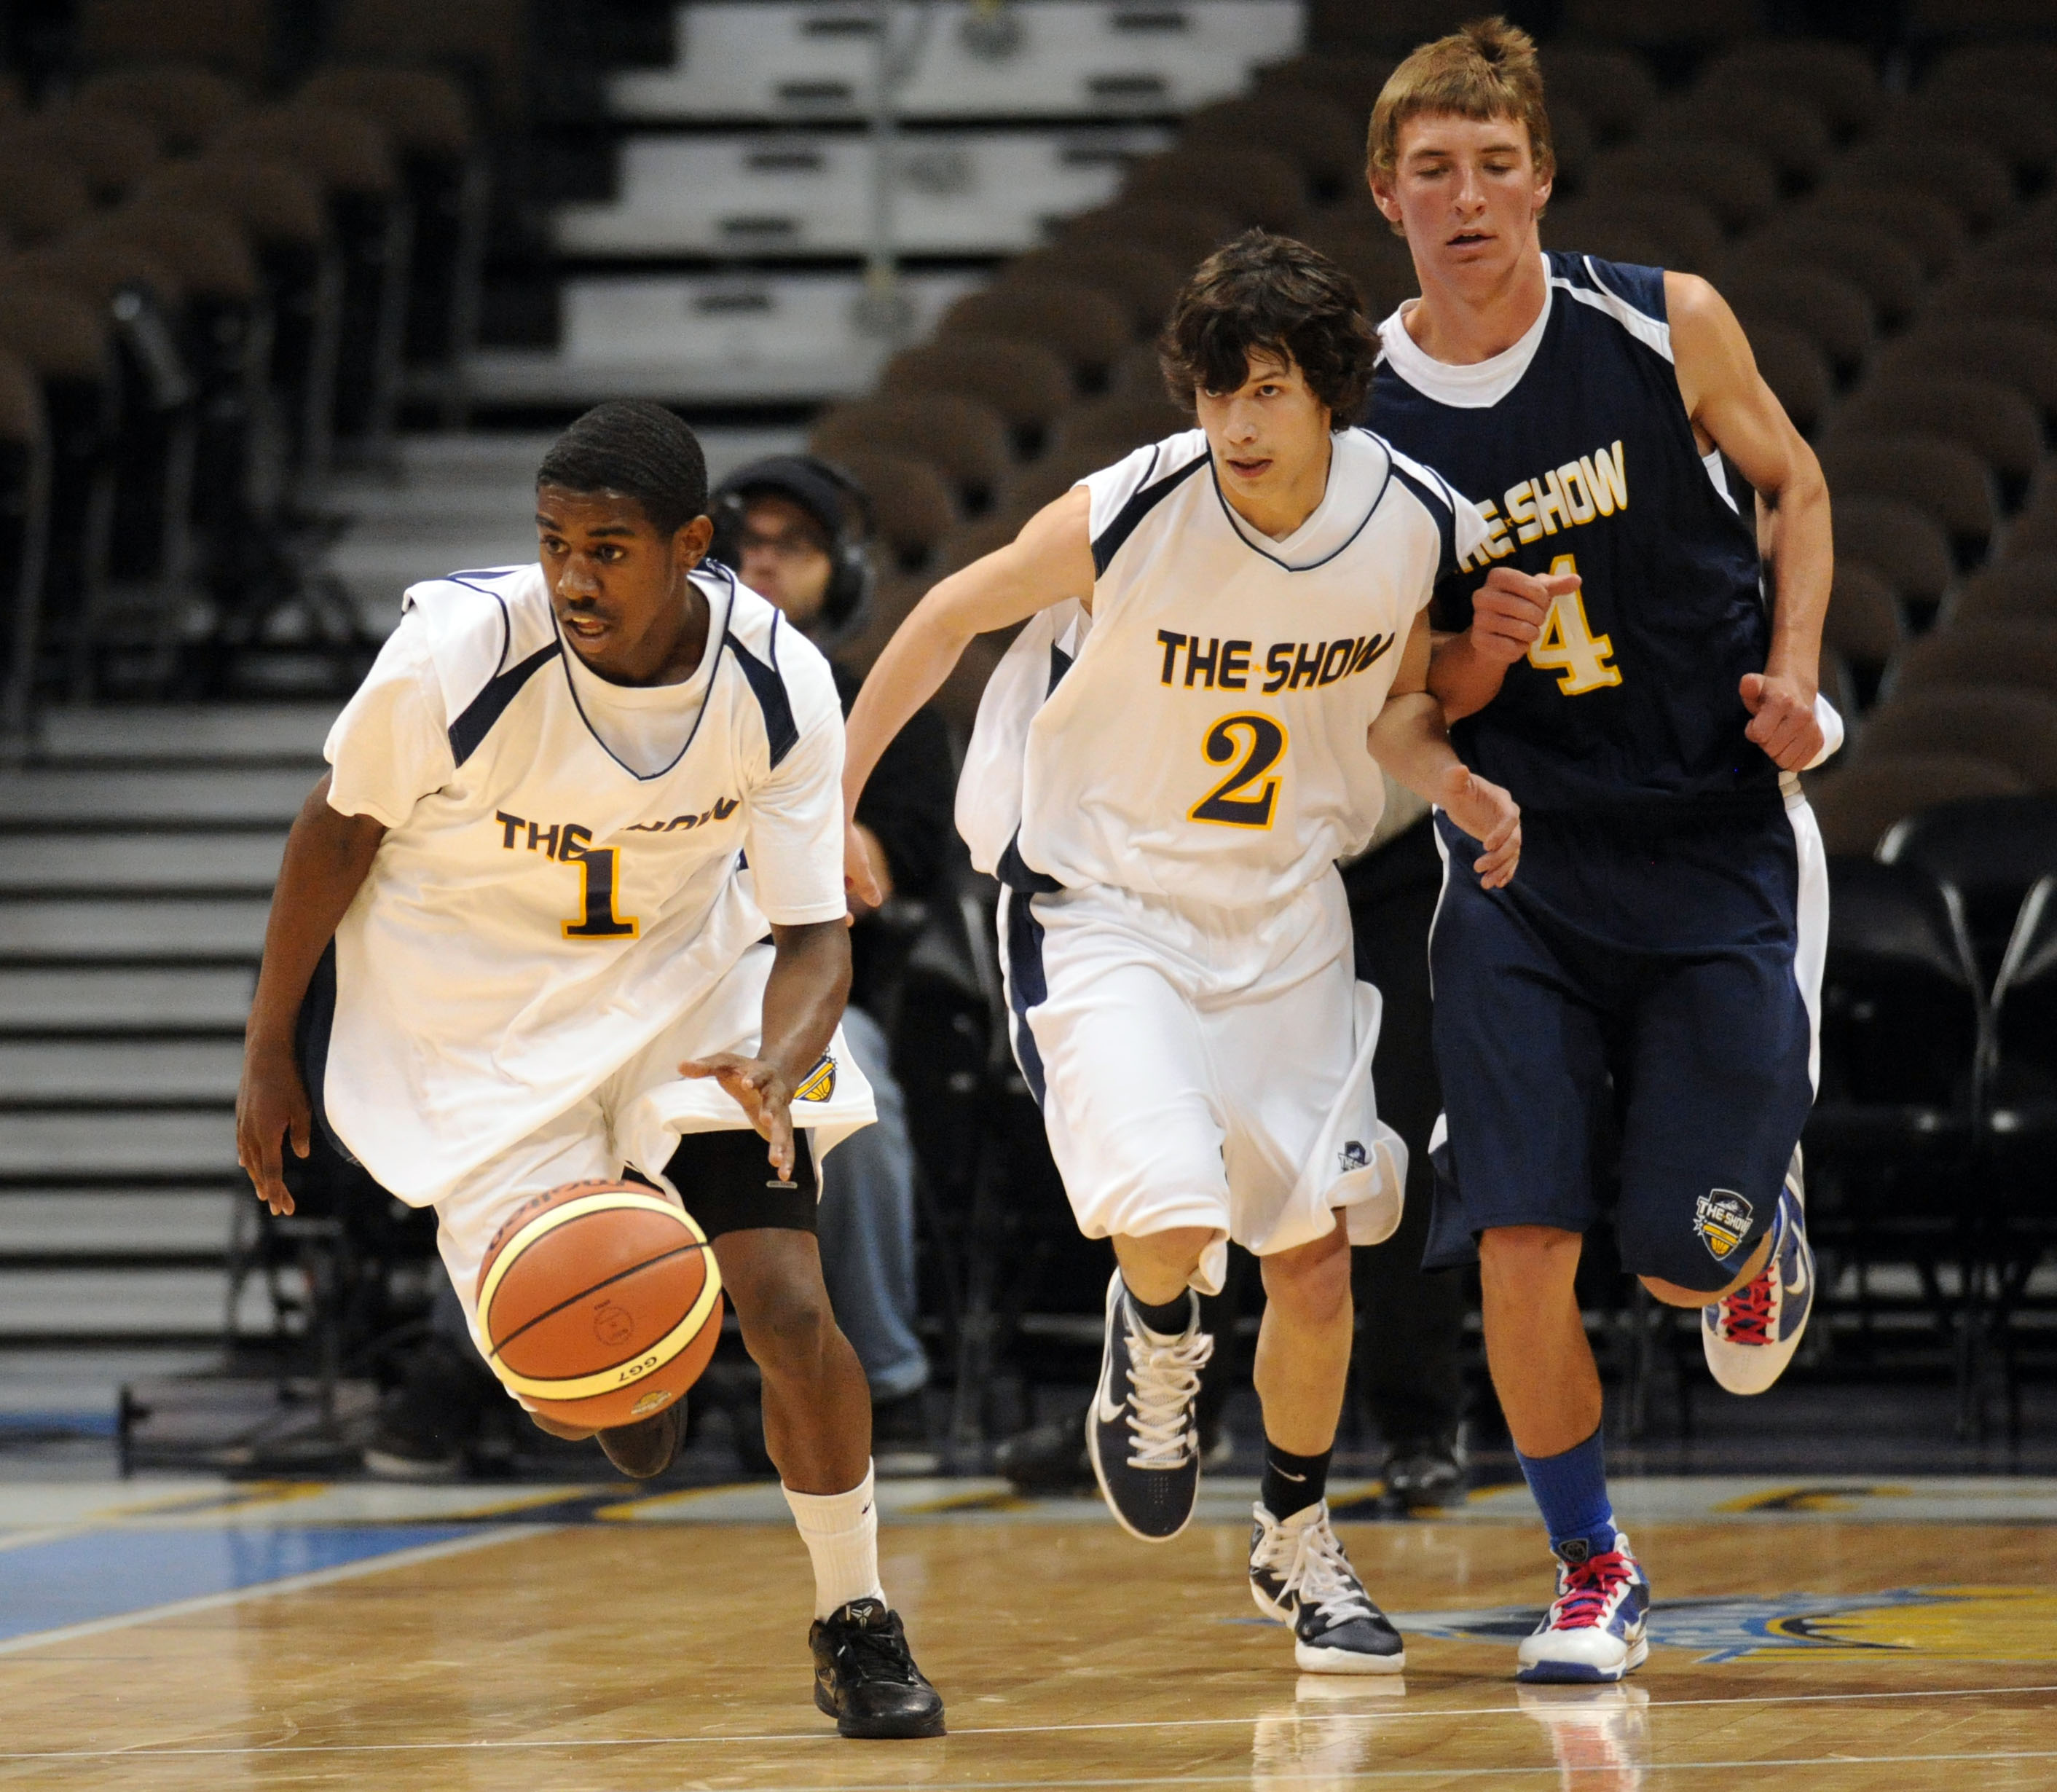 Law Enables Students With Disabilities To Play Sports